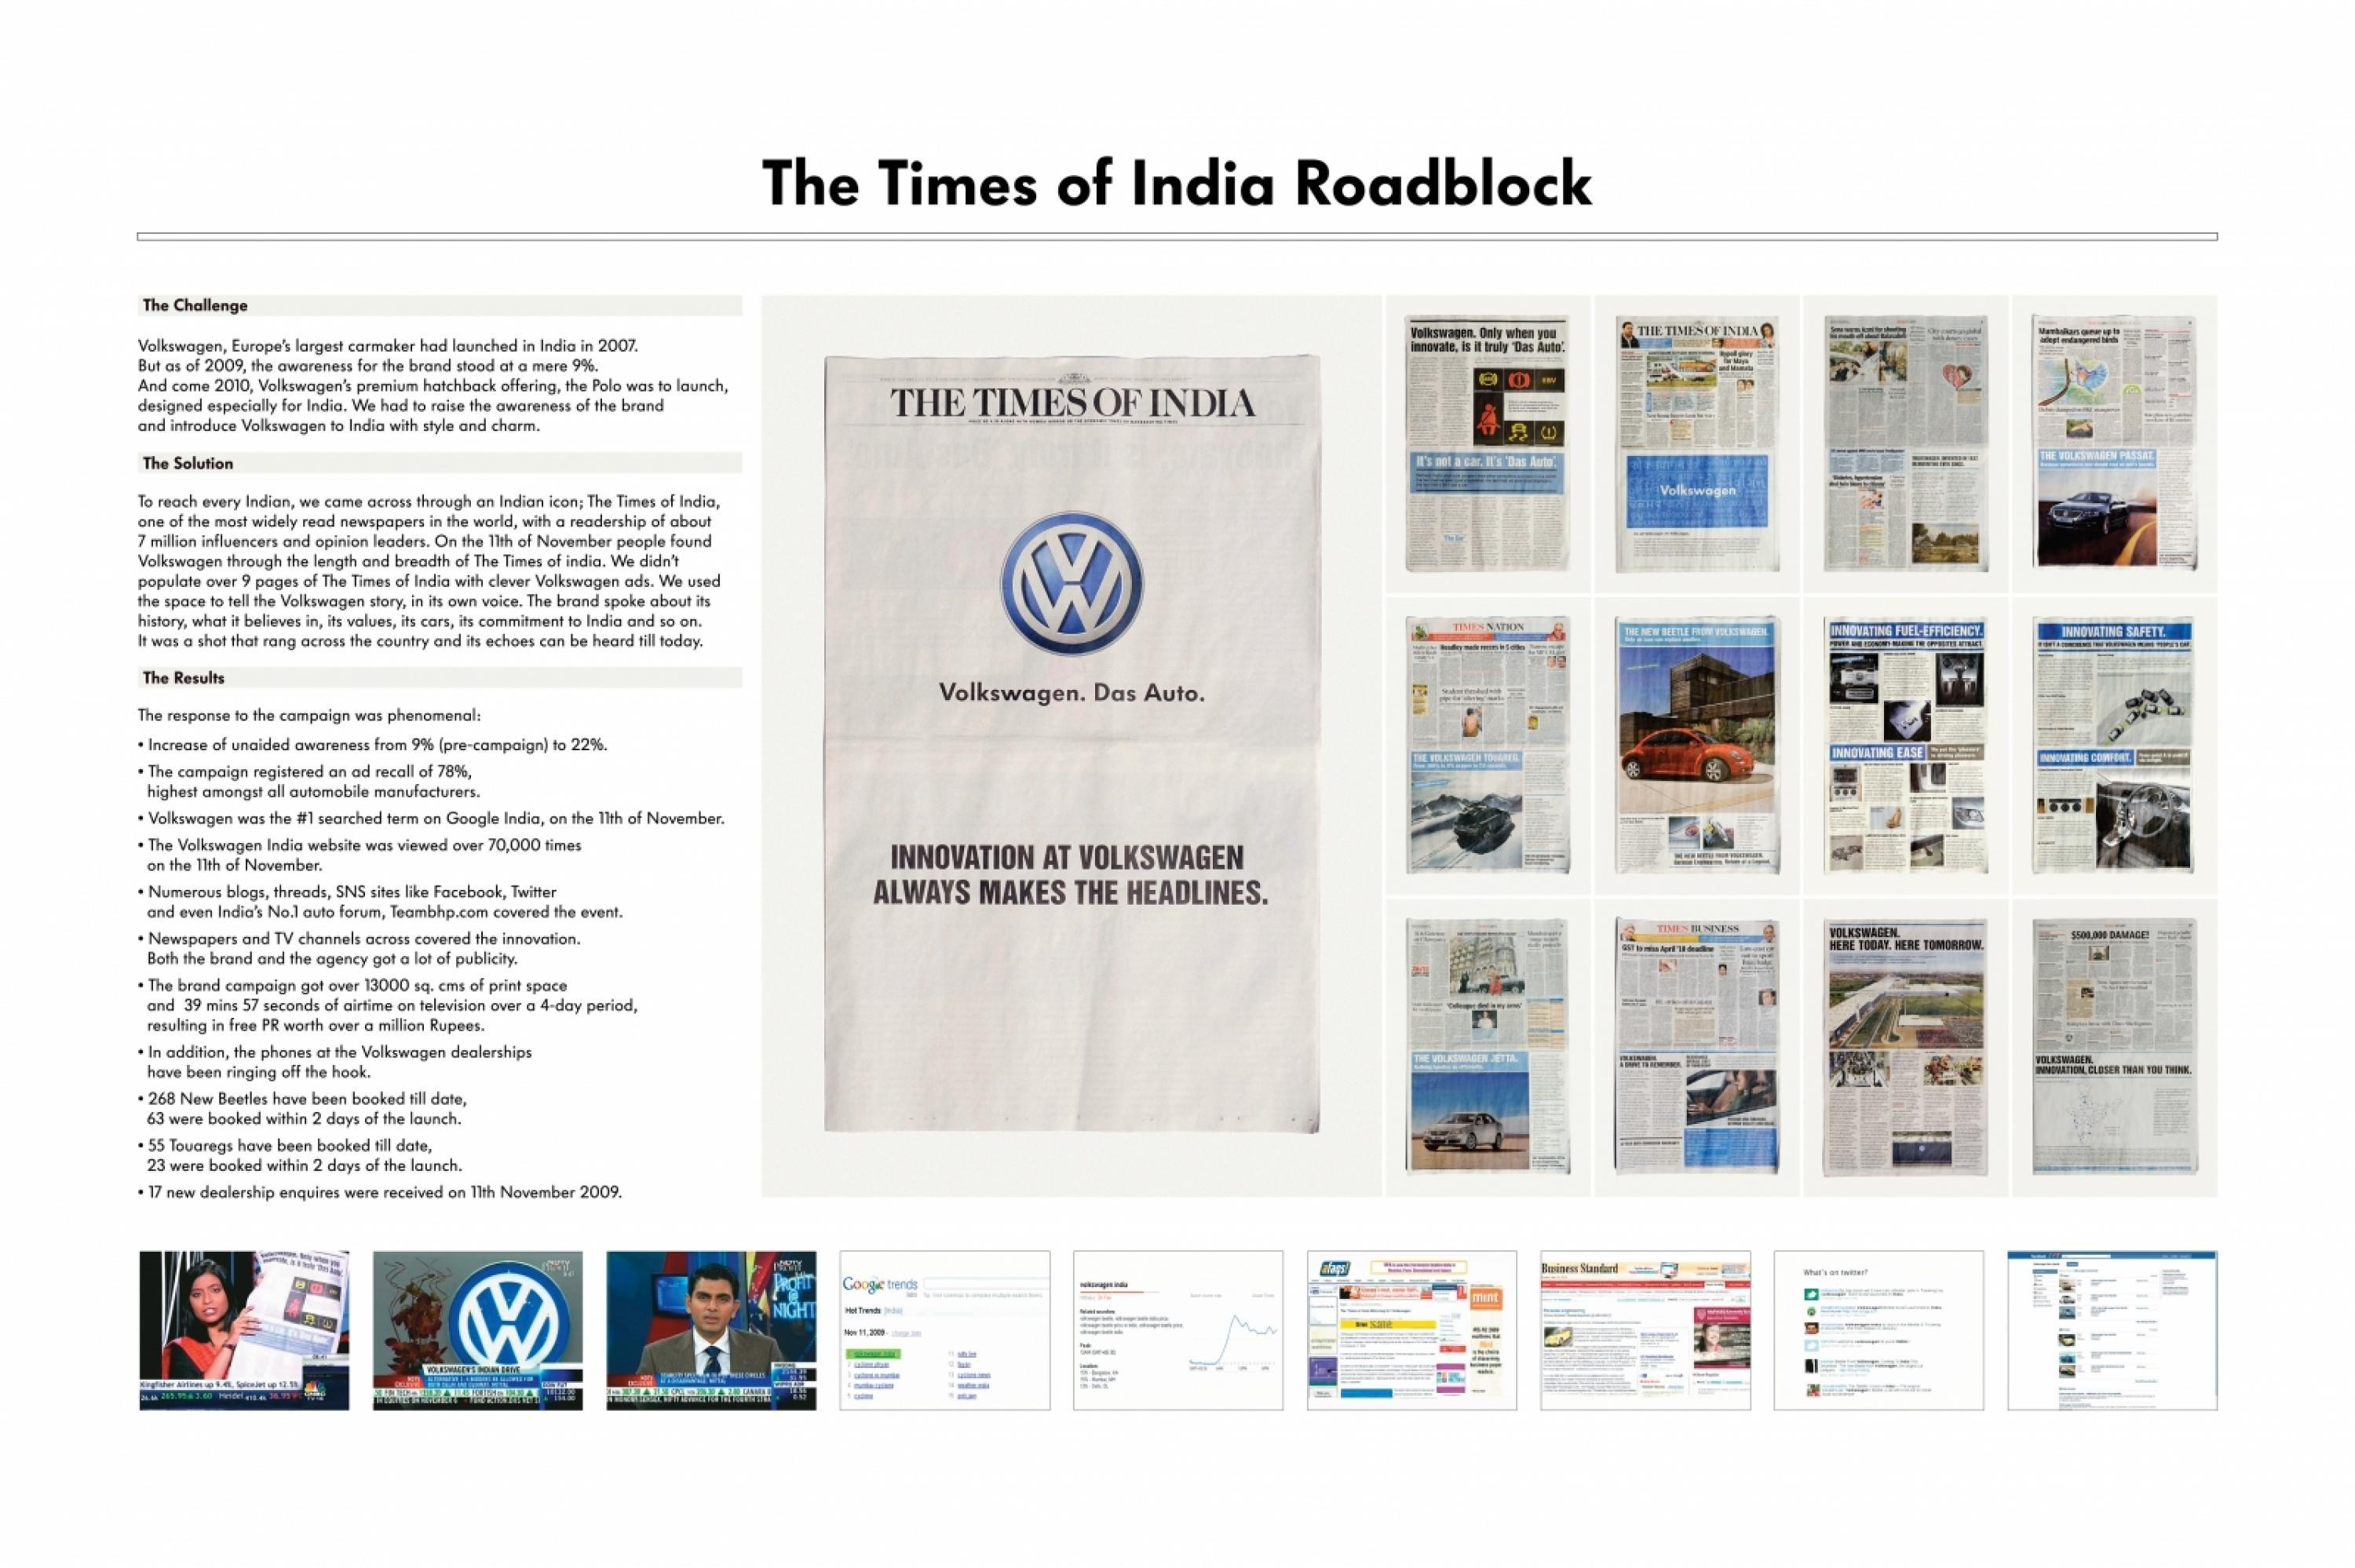 brand building strategies by volkswagen in india Volkswagen in india case study - scribd volkswagen in india: a ddb india case study challenges for volkswagen : when you are the 18 brand to launch into a market , you have to hit the ground  social media case study : volkswagen - t2 marketing international may 9, 2013.